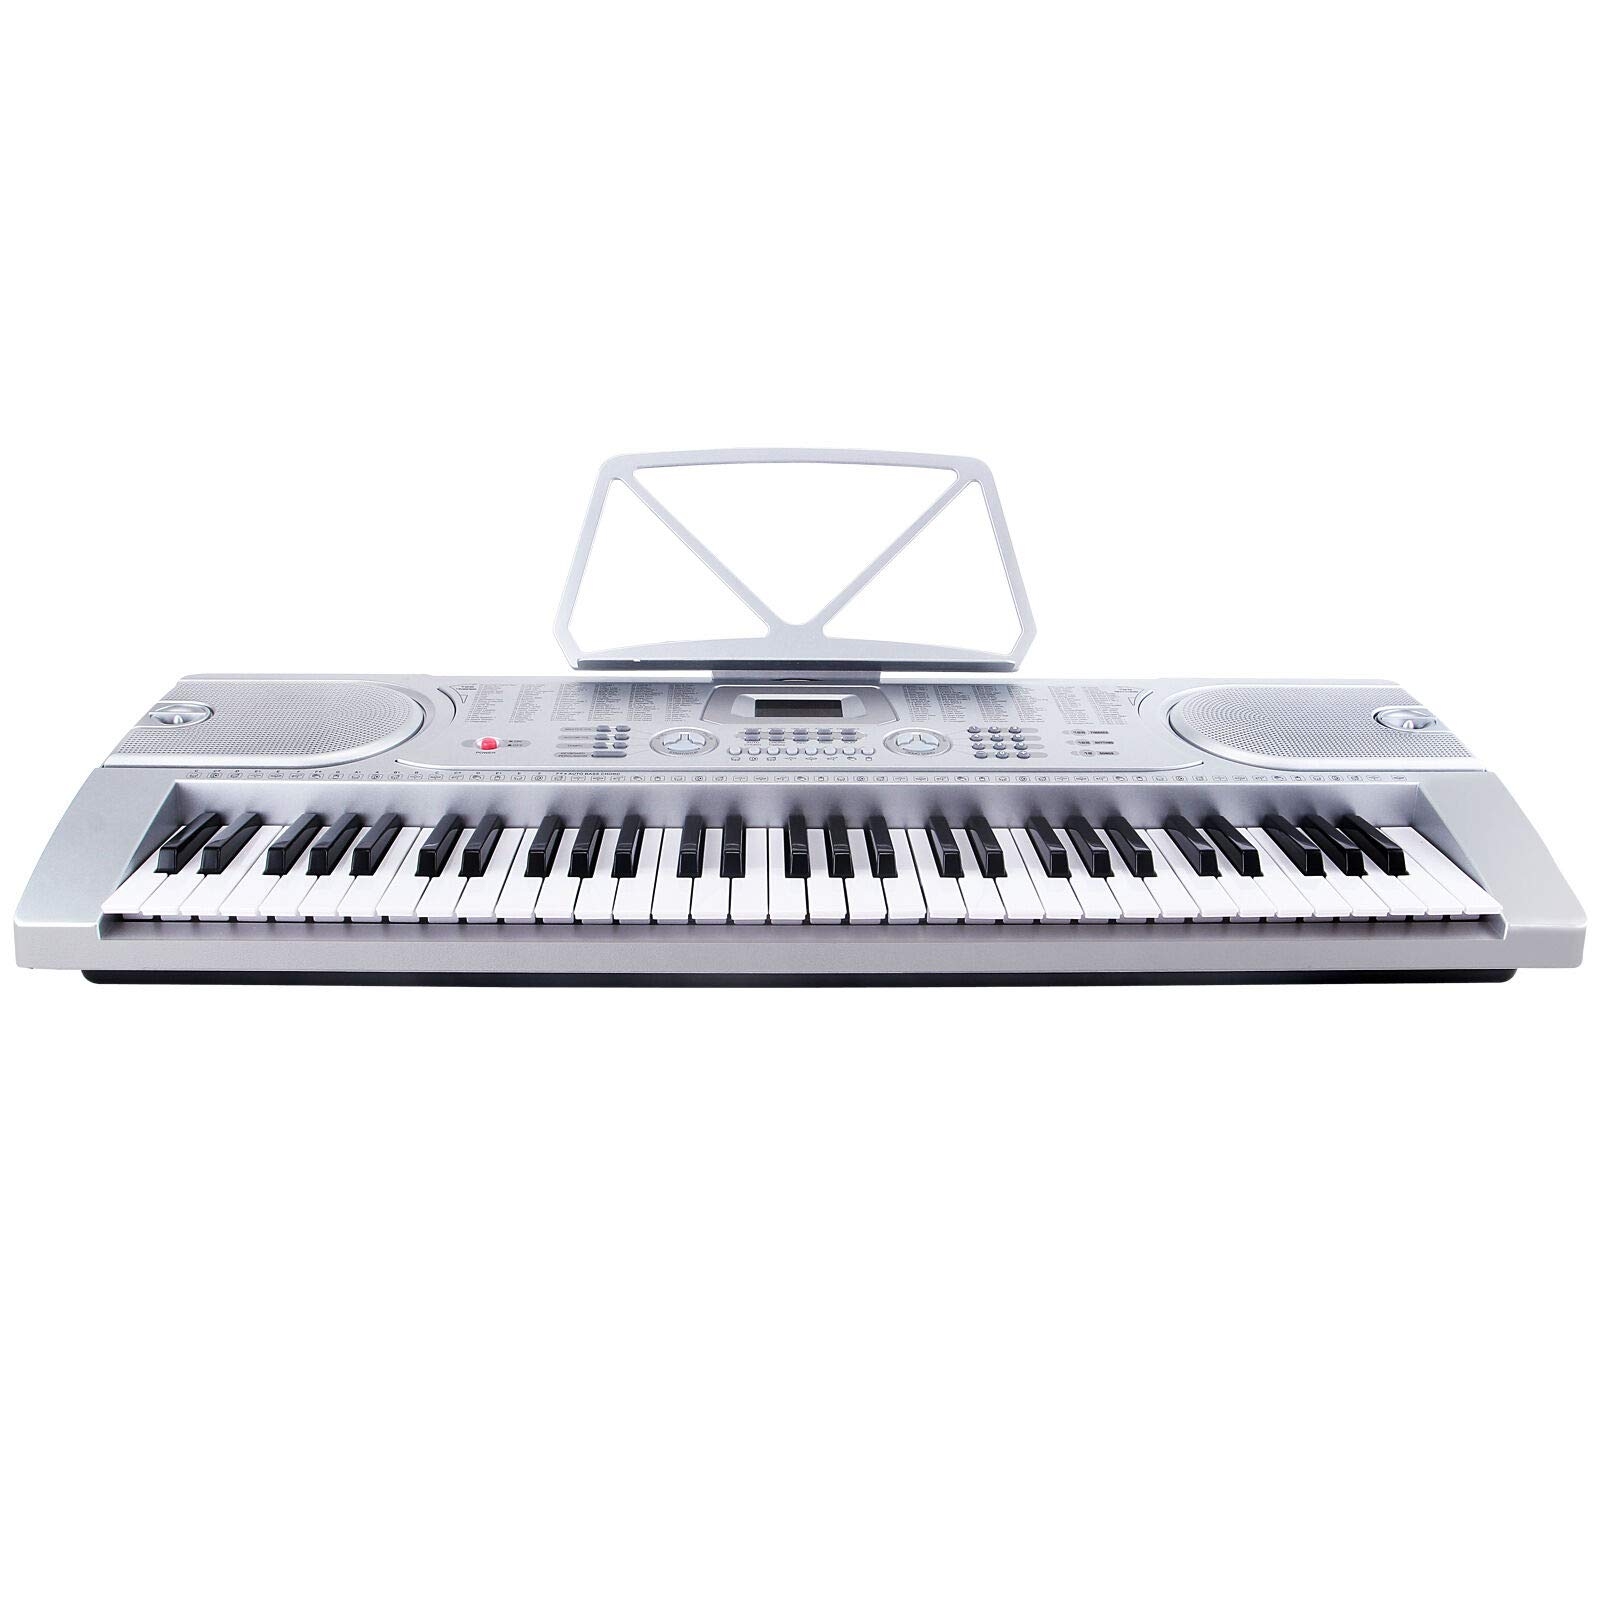 61 Key Music Electronic Keyboard Digital Piano Organ with Microphone Silver Discount for Business Customers and B2B by Smart Choice America by SMART CHOICE AMERICA